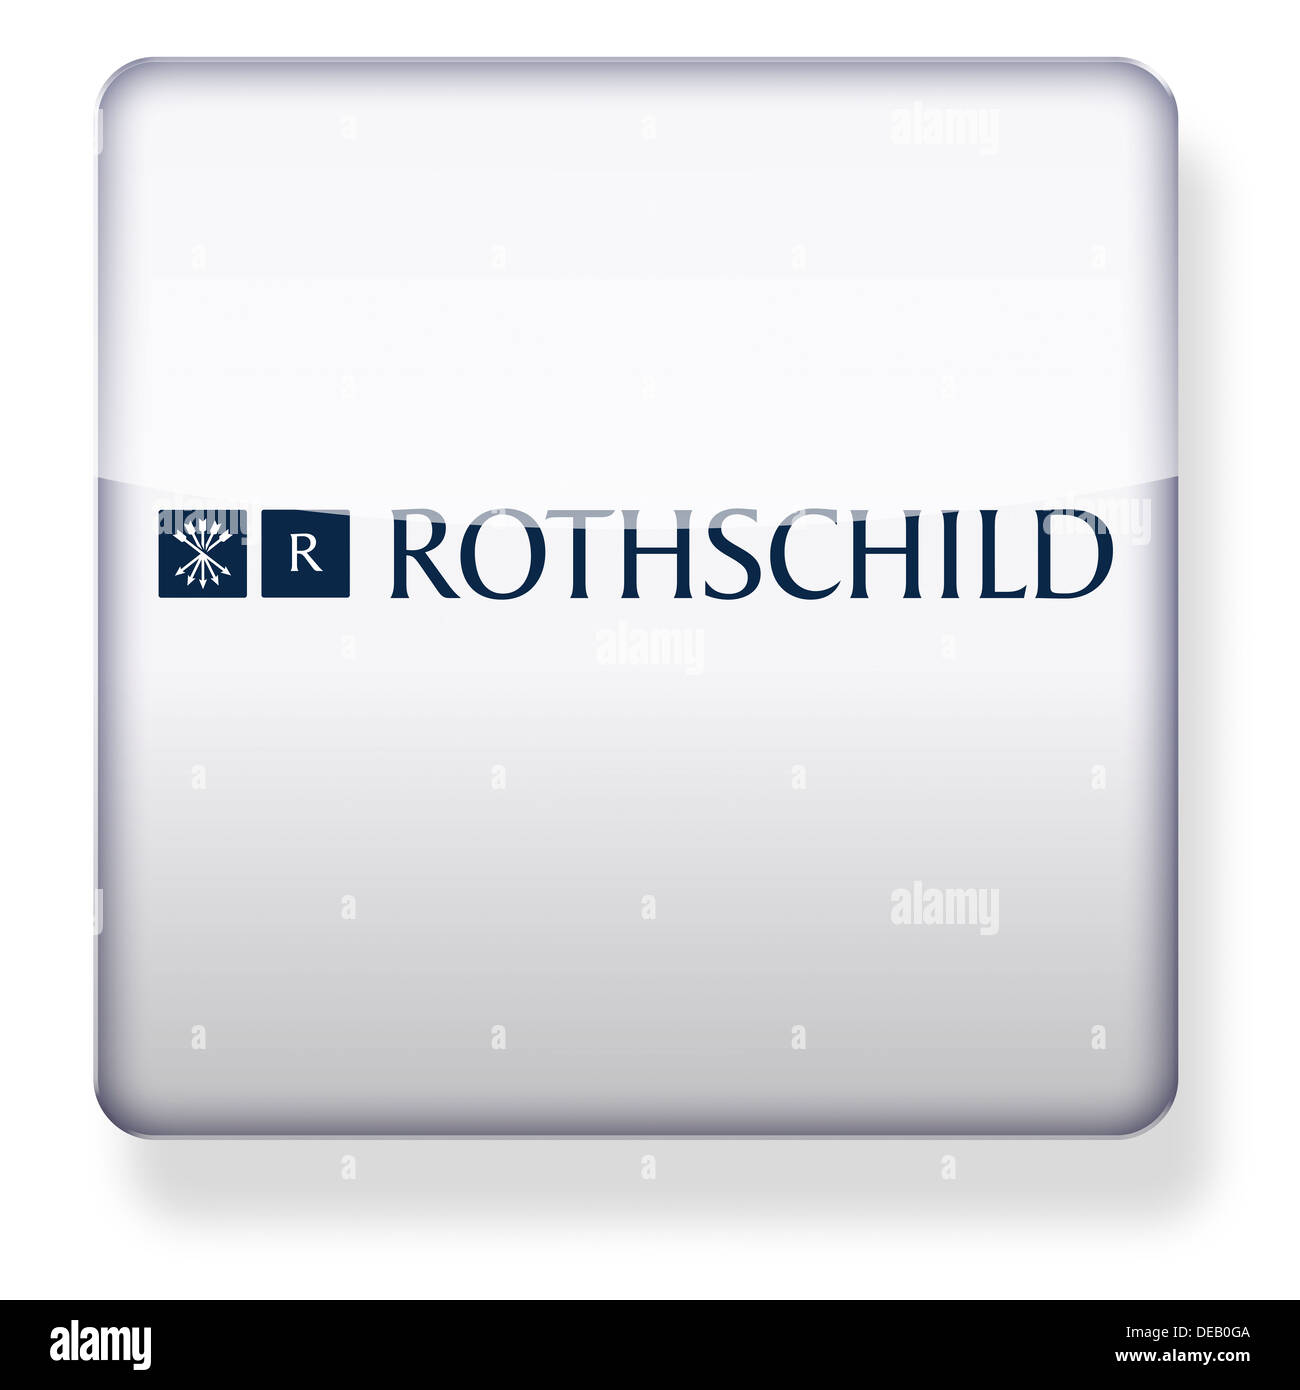 Rothschild Group logo as an app icon. Clipping path included. - Stock Image